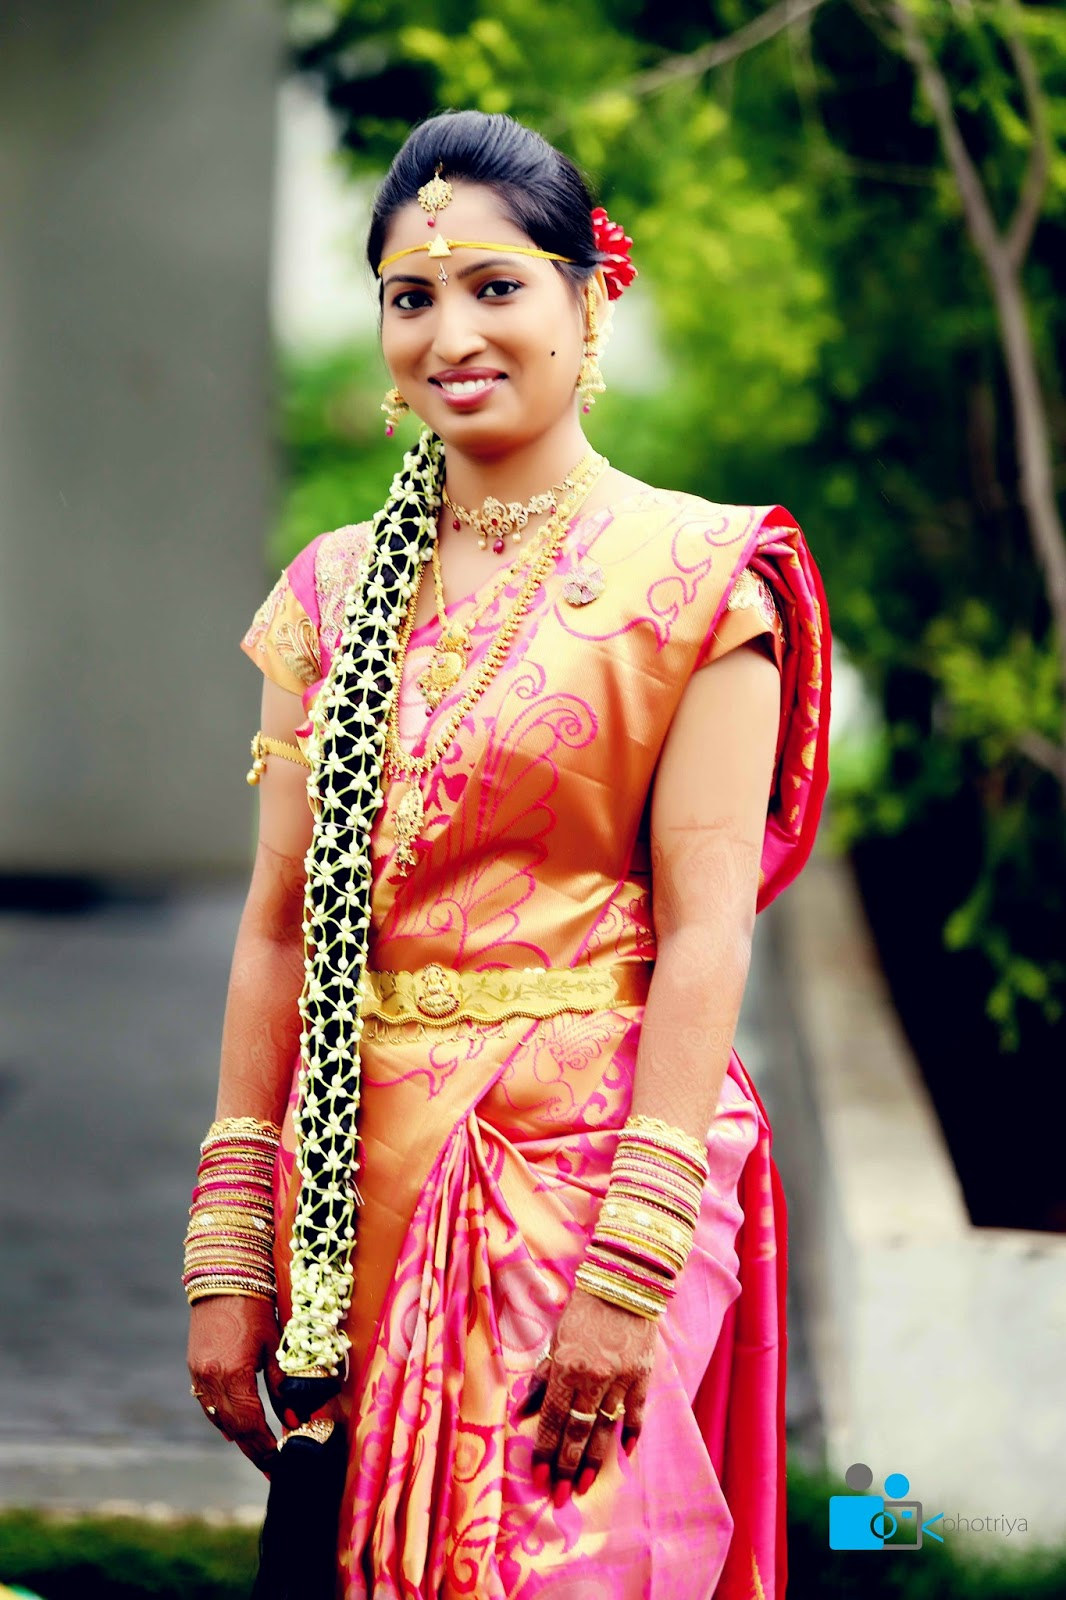 south newfane hindu single women Our network of black women in south newfane is the perfect place to make blacked friends or find a black girlfriend in south south newfane hindu singles.